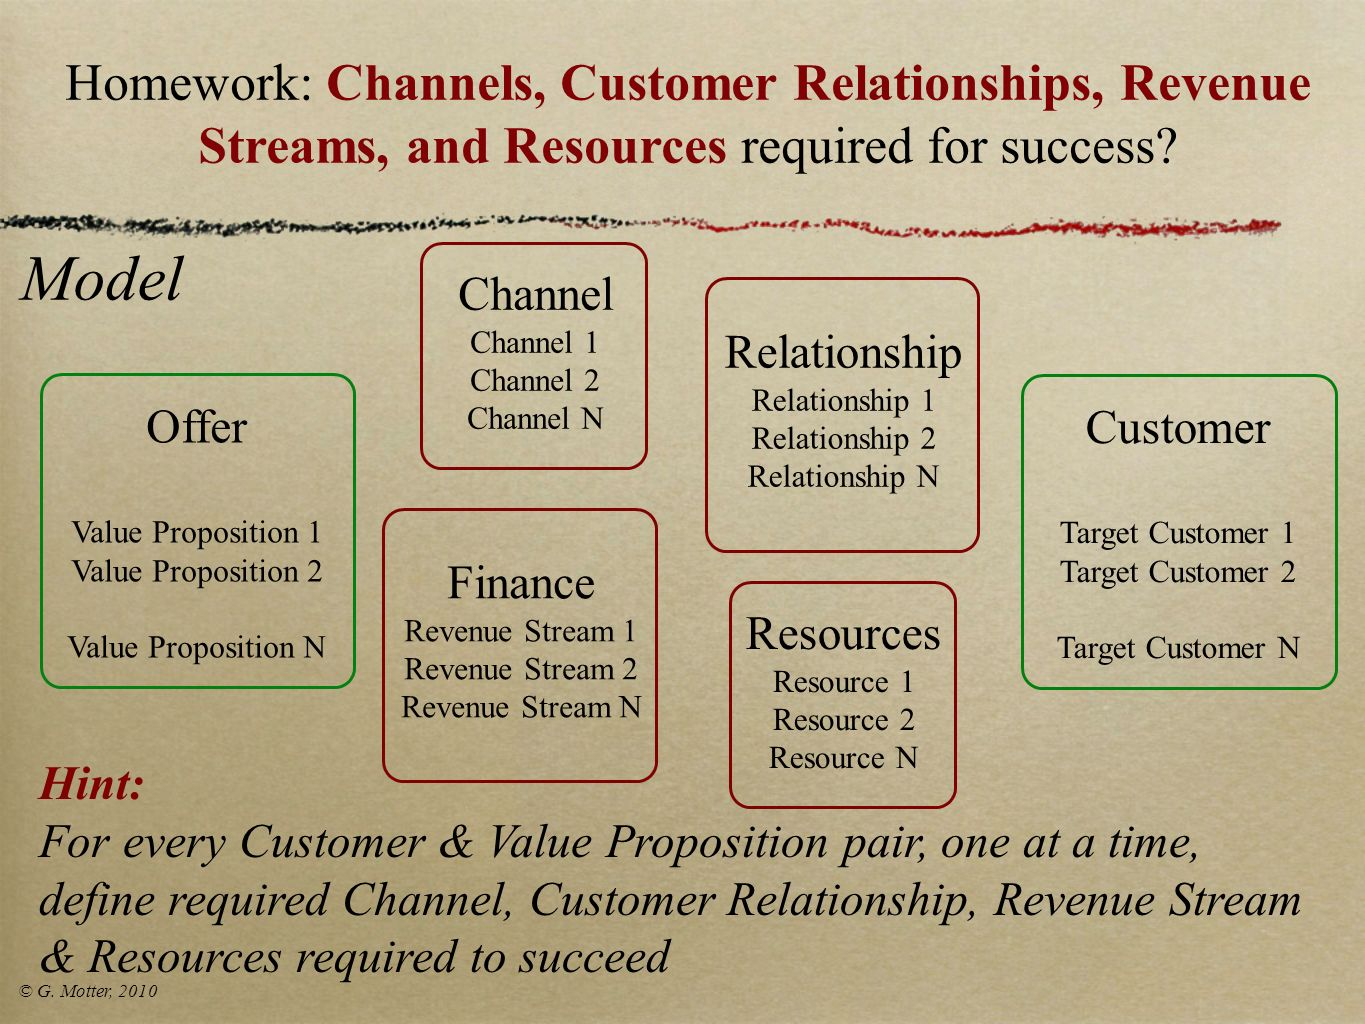 Homework: Channels, Customer Relationships, Revenue Streams, and Resources required for success